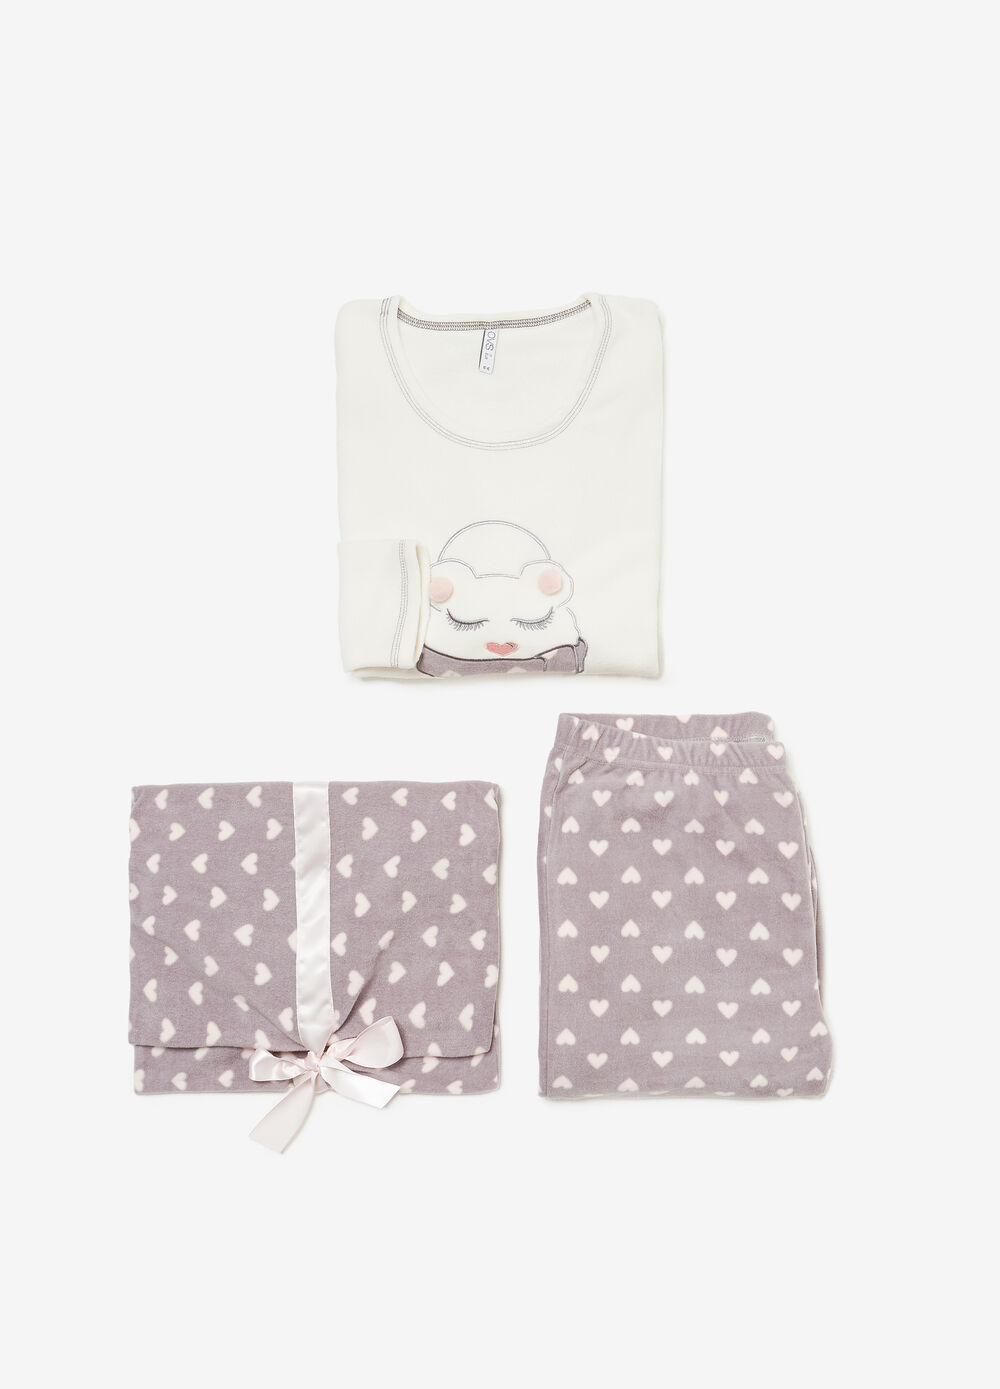 Pyjamas with embroidery, pompoms and heart pattern